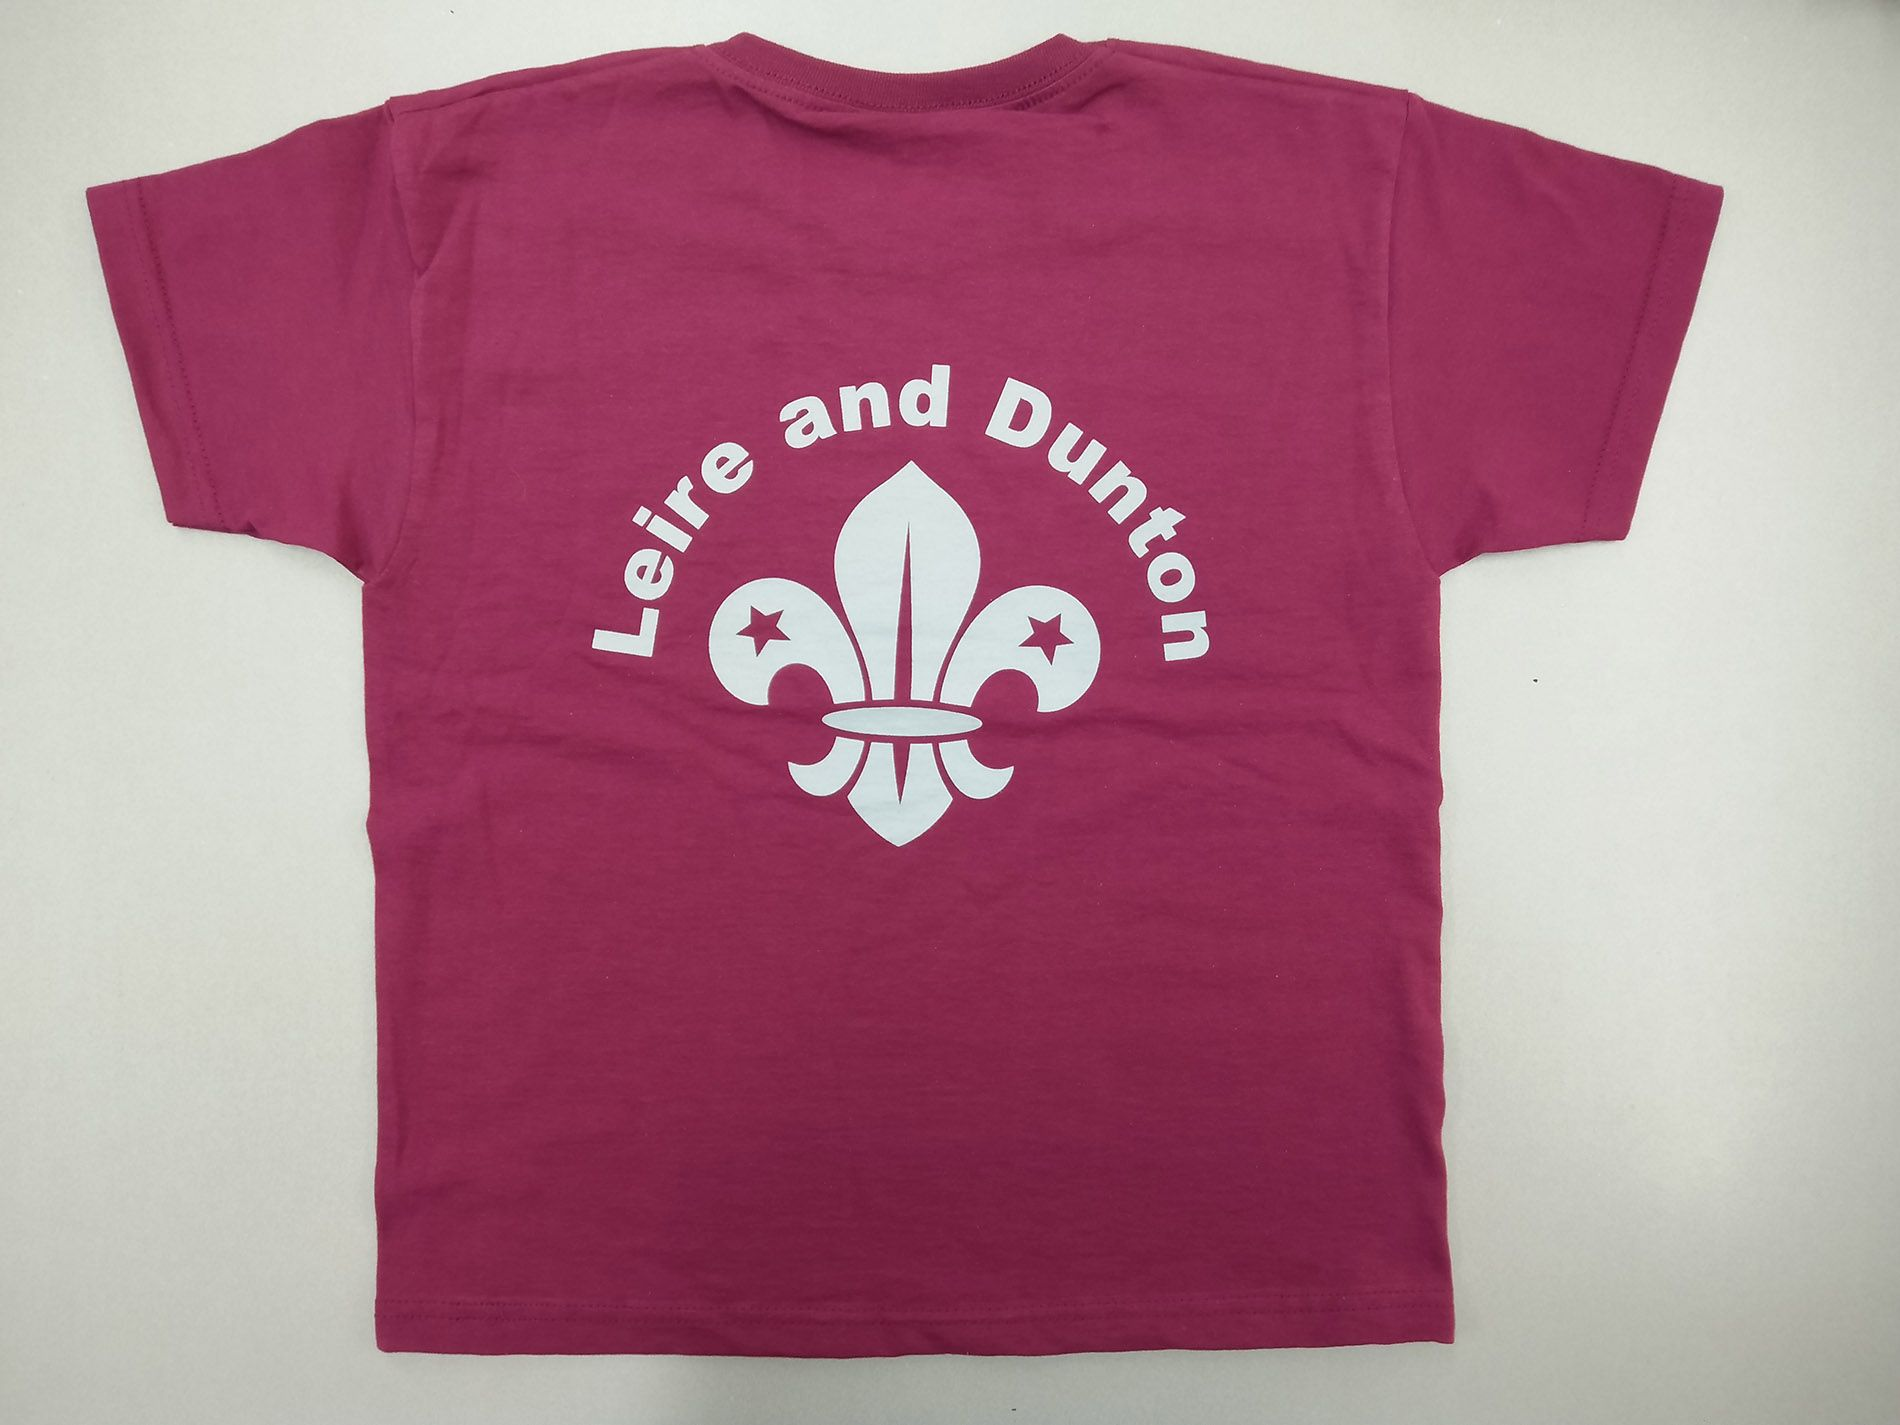 For the Leire and Dunton Scout Group – T-shirts printed with custom logo on the front and custom print on the back. Short sleeved t-shirts in Burgundy – Looking Great!